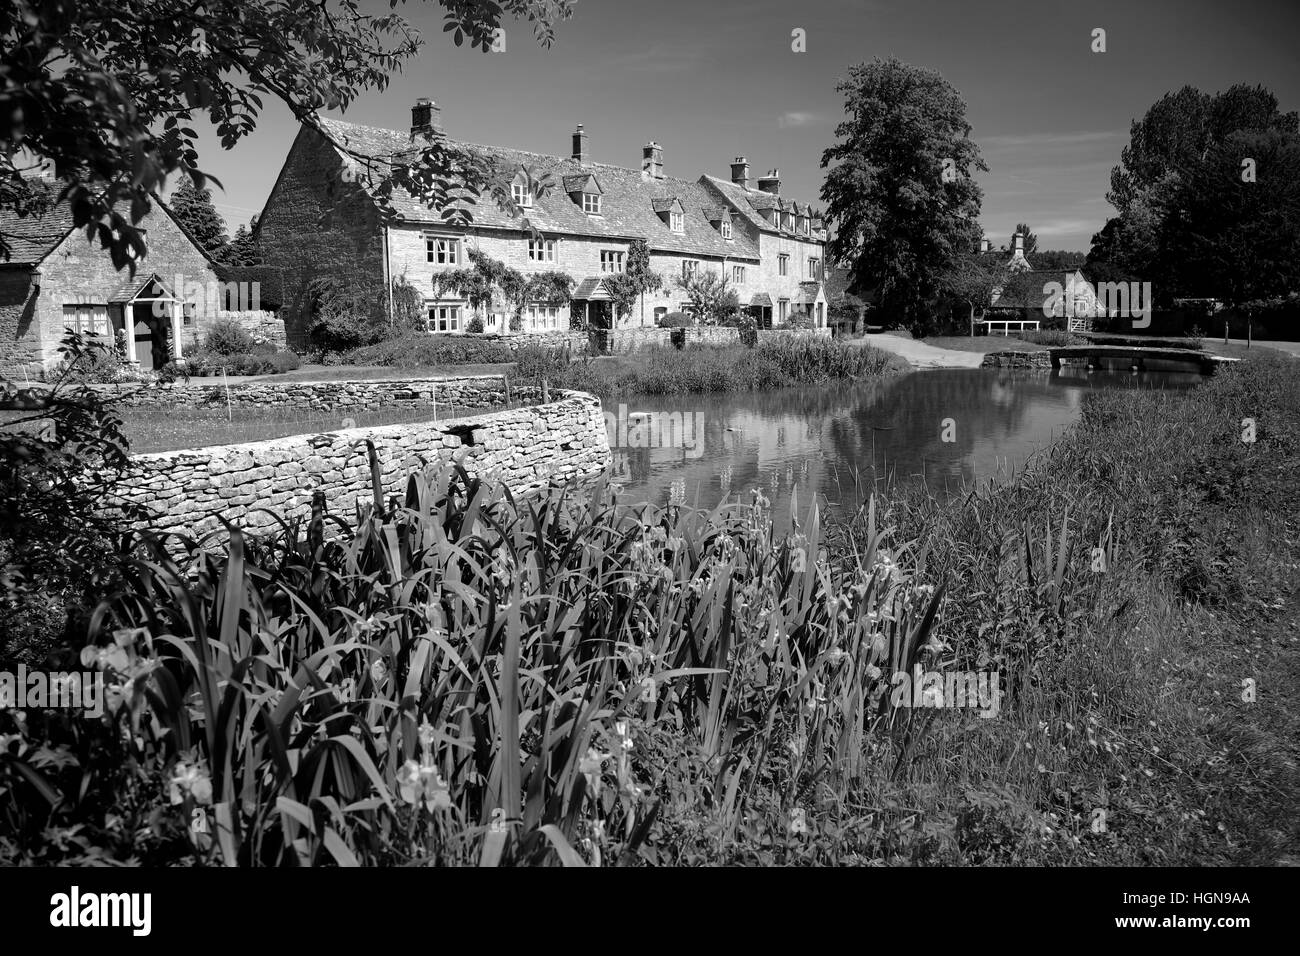 Summer, The Old Watermill and Cottages, river Windrush, Lower Slaughter village,  Gloucestershire Cotswolds, England, - Stock Image